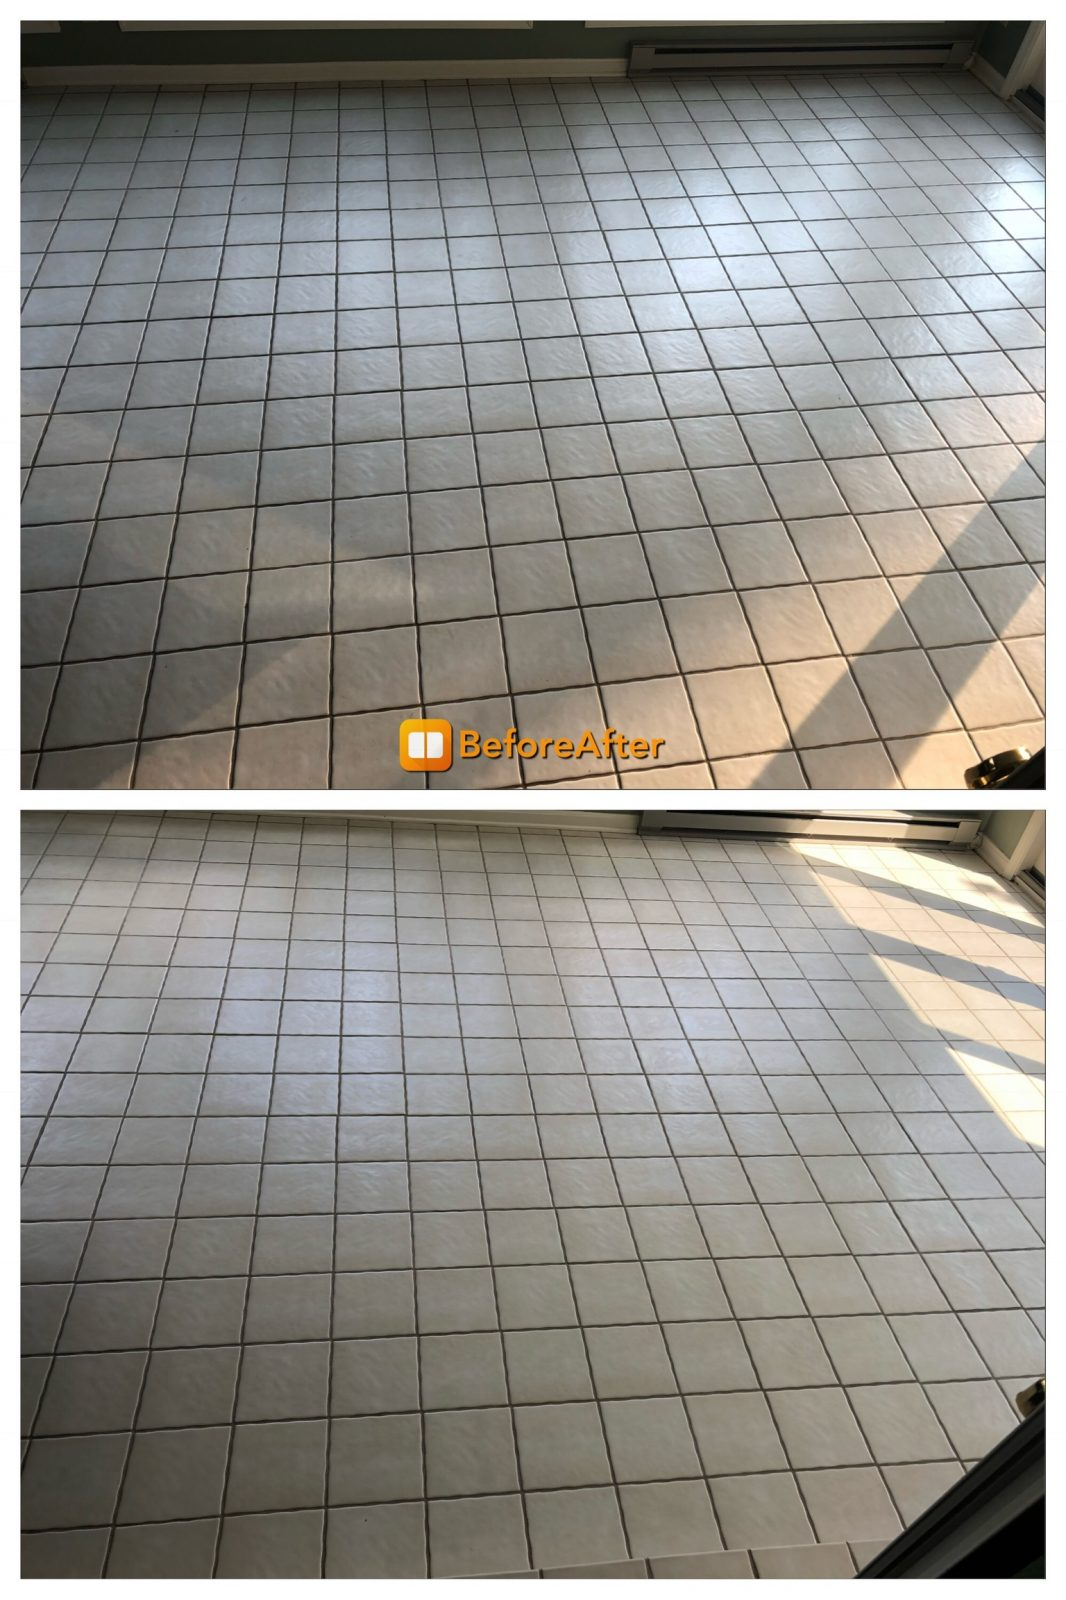 Professional Tile & Grout Cleaning Cincinnati Ohio by Howards Cleaning Service